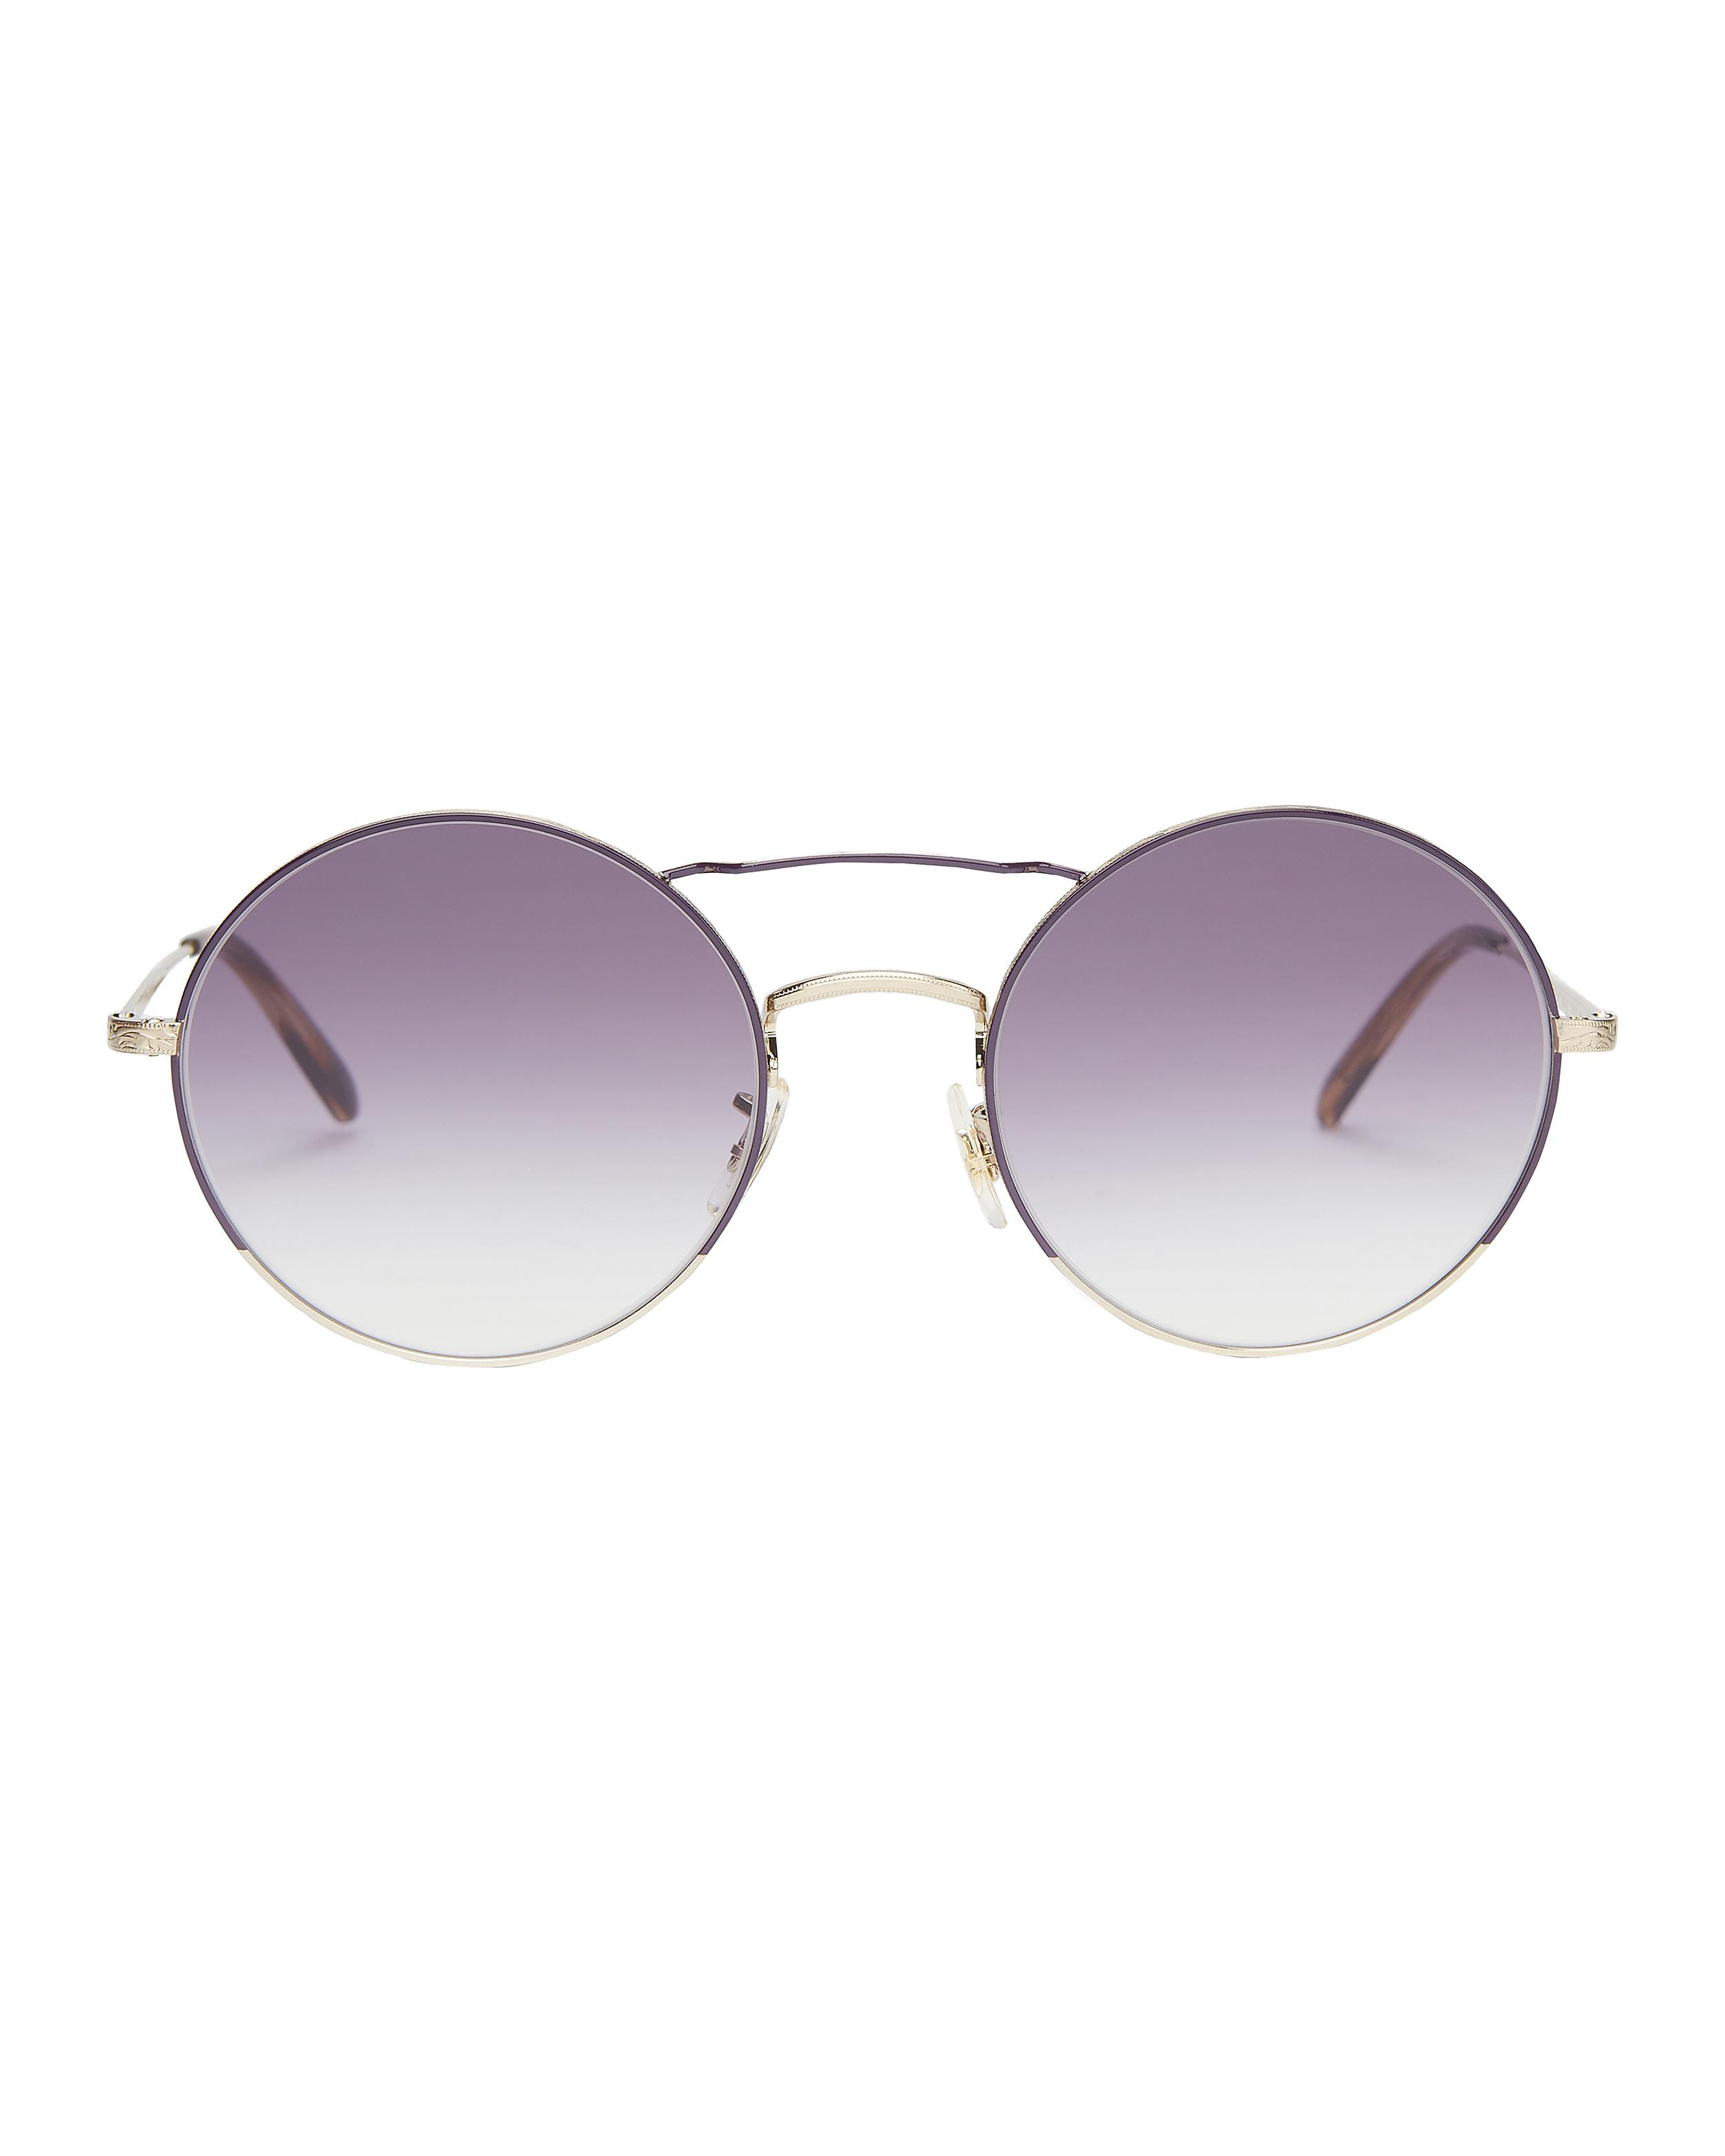 6f360fb49ed Gallery. Previously sold at  INTERMIX · Women s Oliver Peoples ...